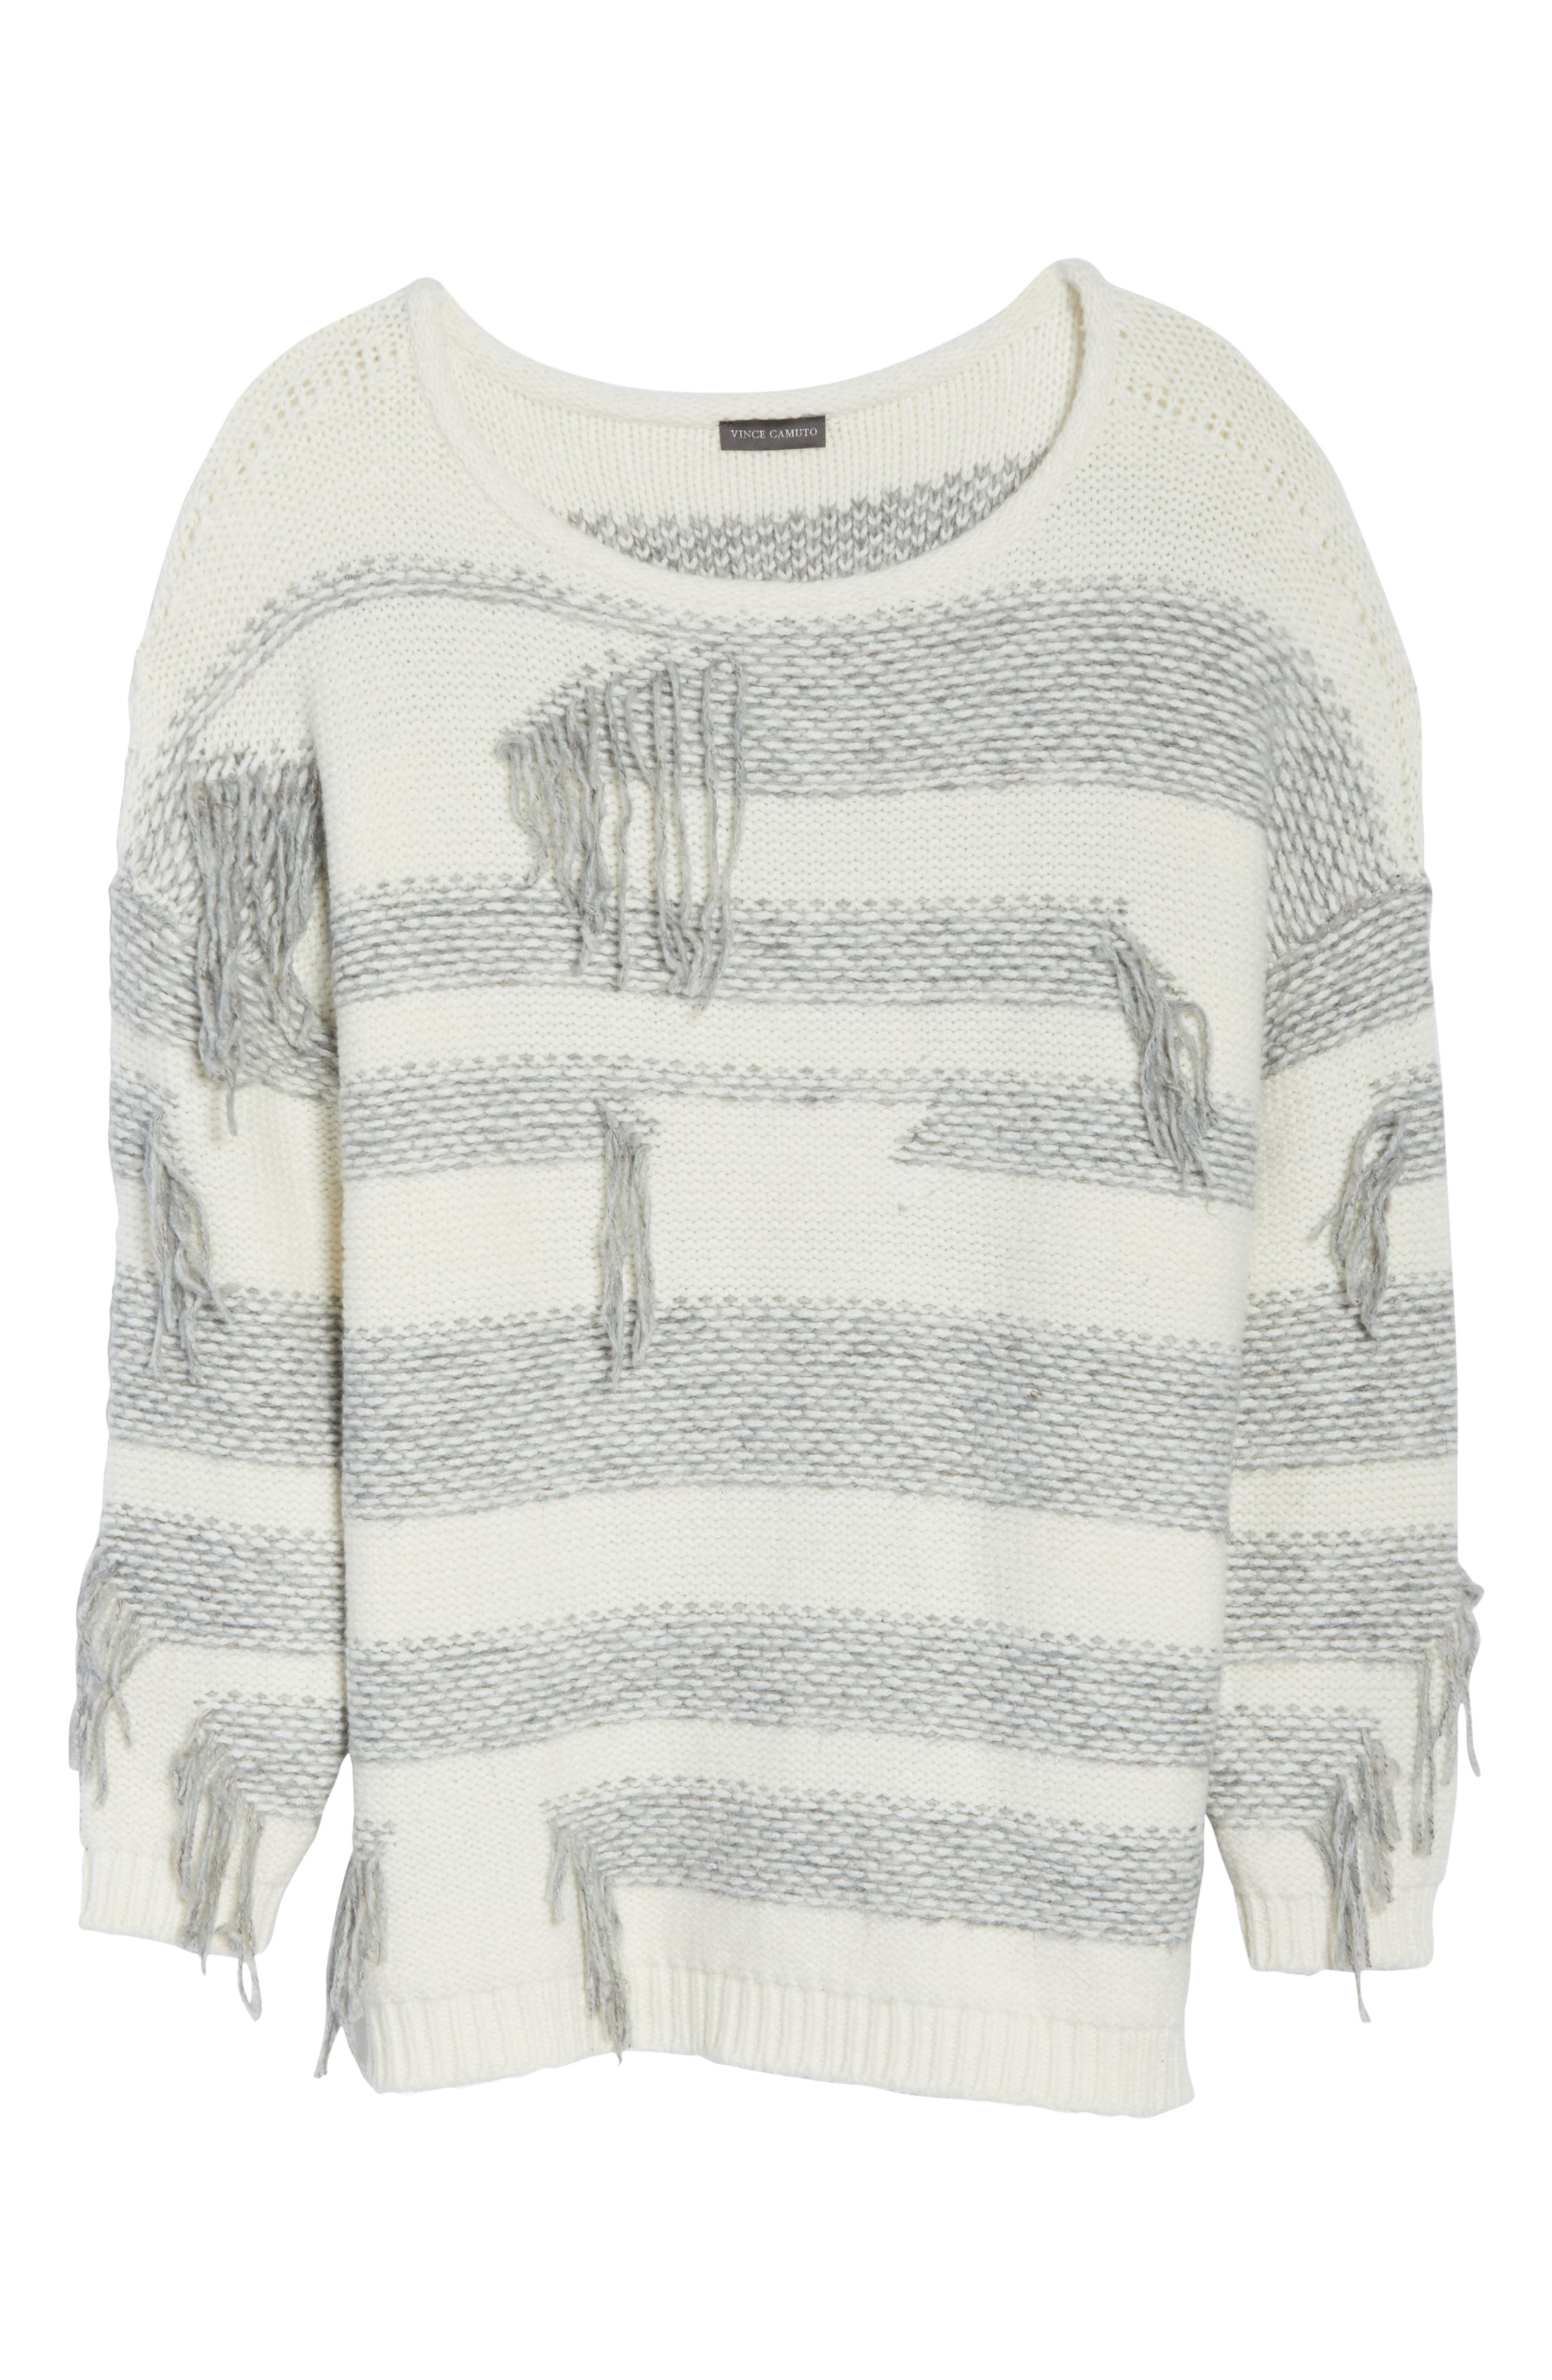 Fringe Detail Stripe Cotton Blend Sweater,                             Alternate thumbnail 6, color,                             LIGHT HEATHER GREY